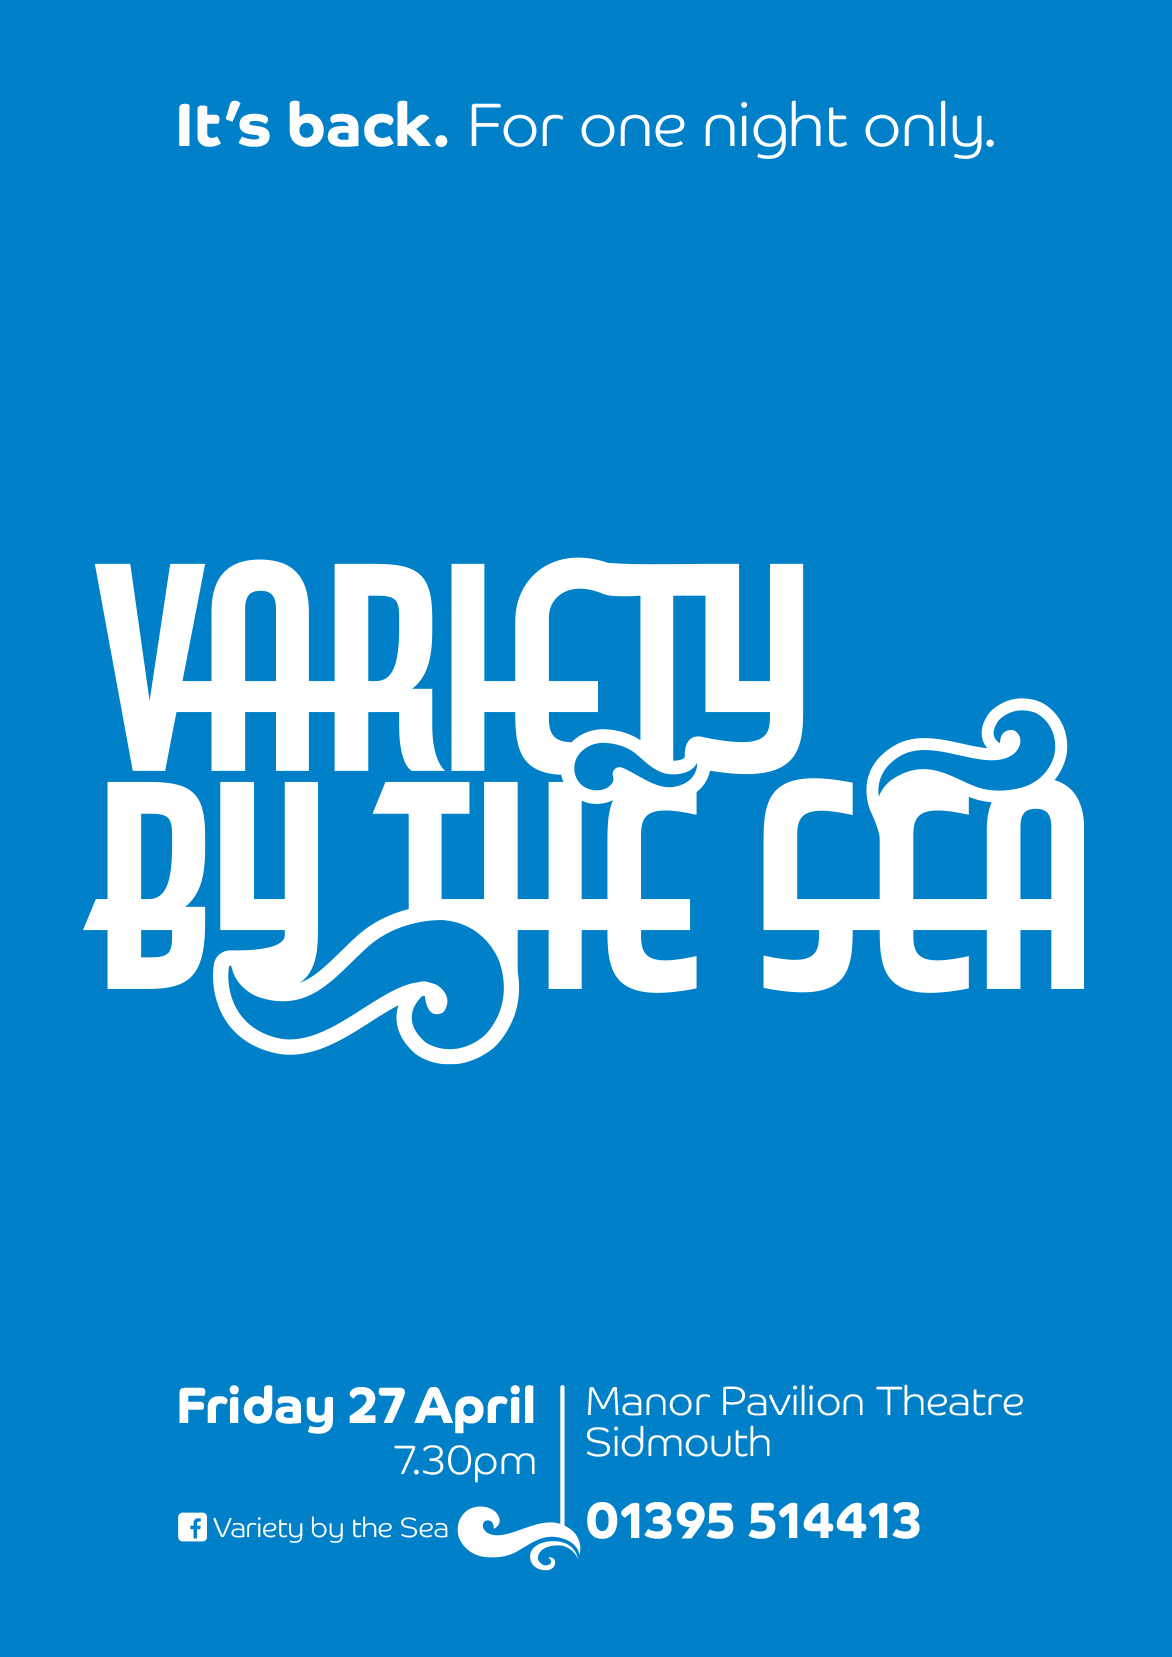 Variety by the Sea